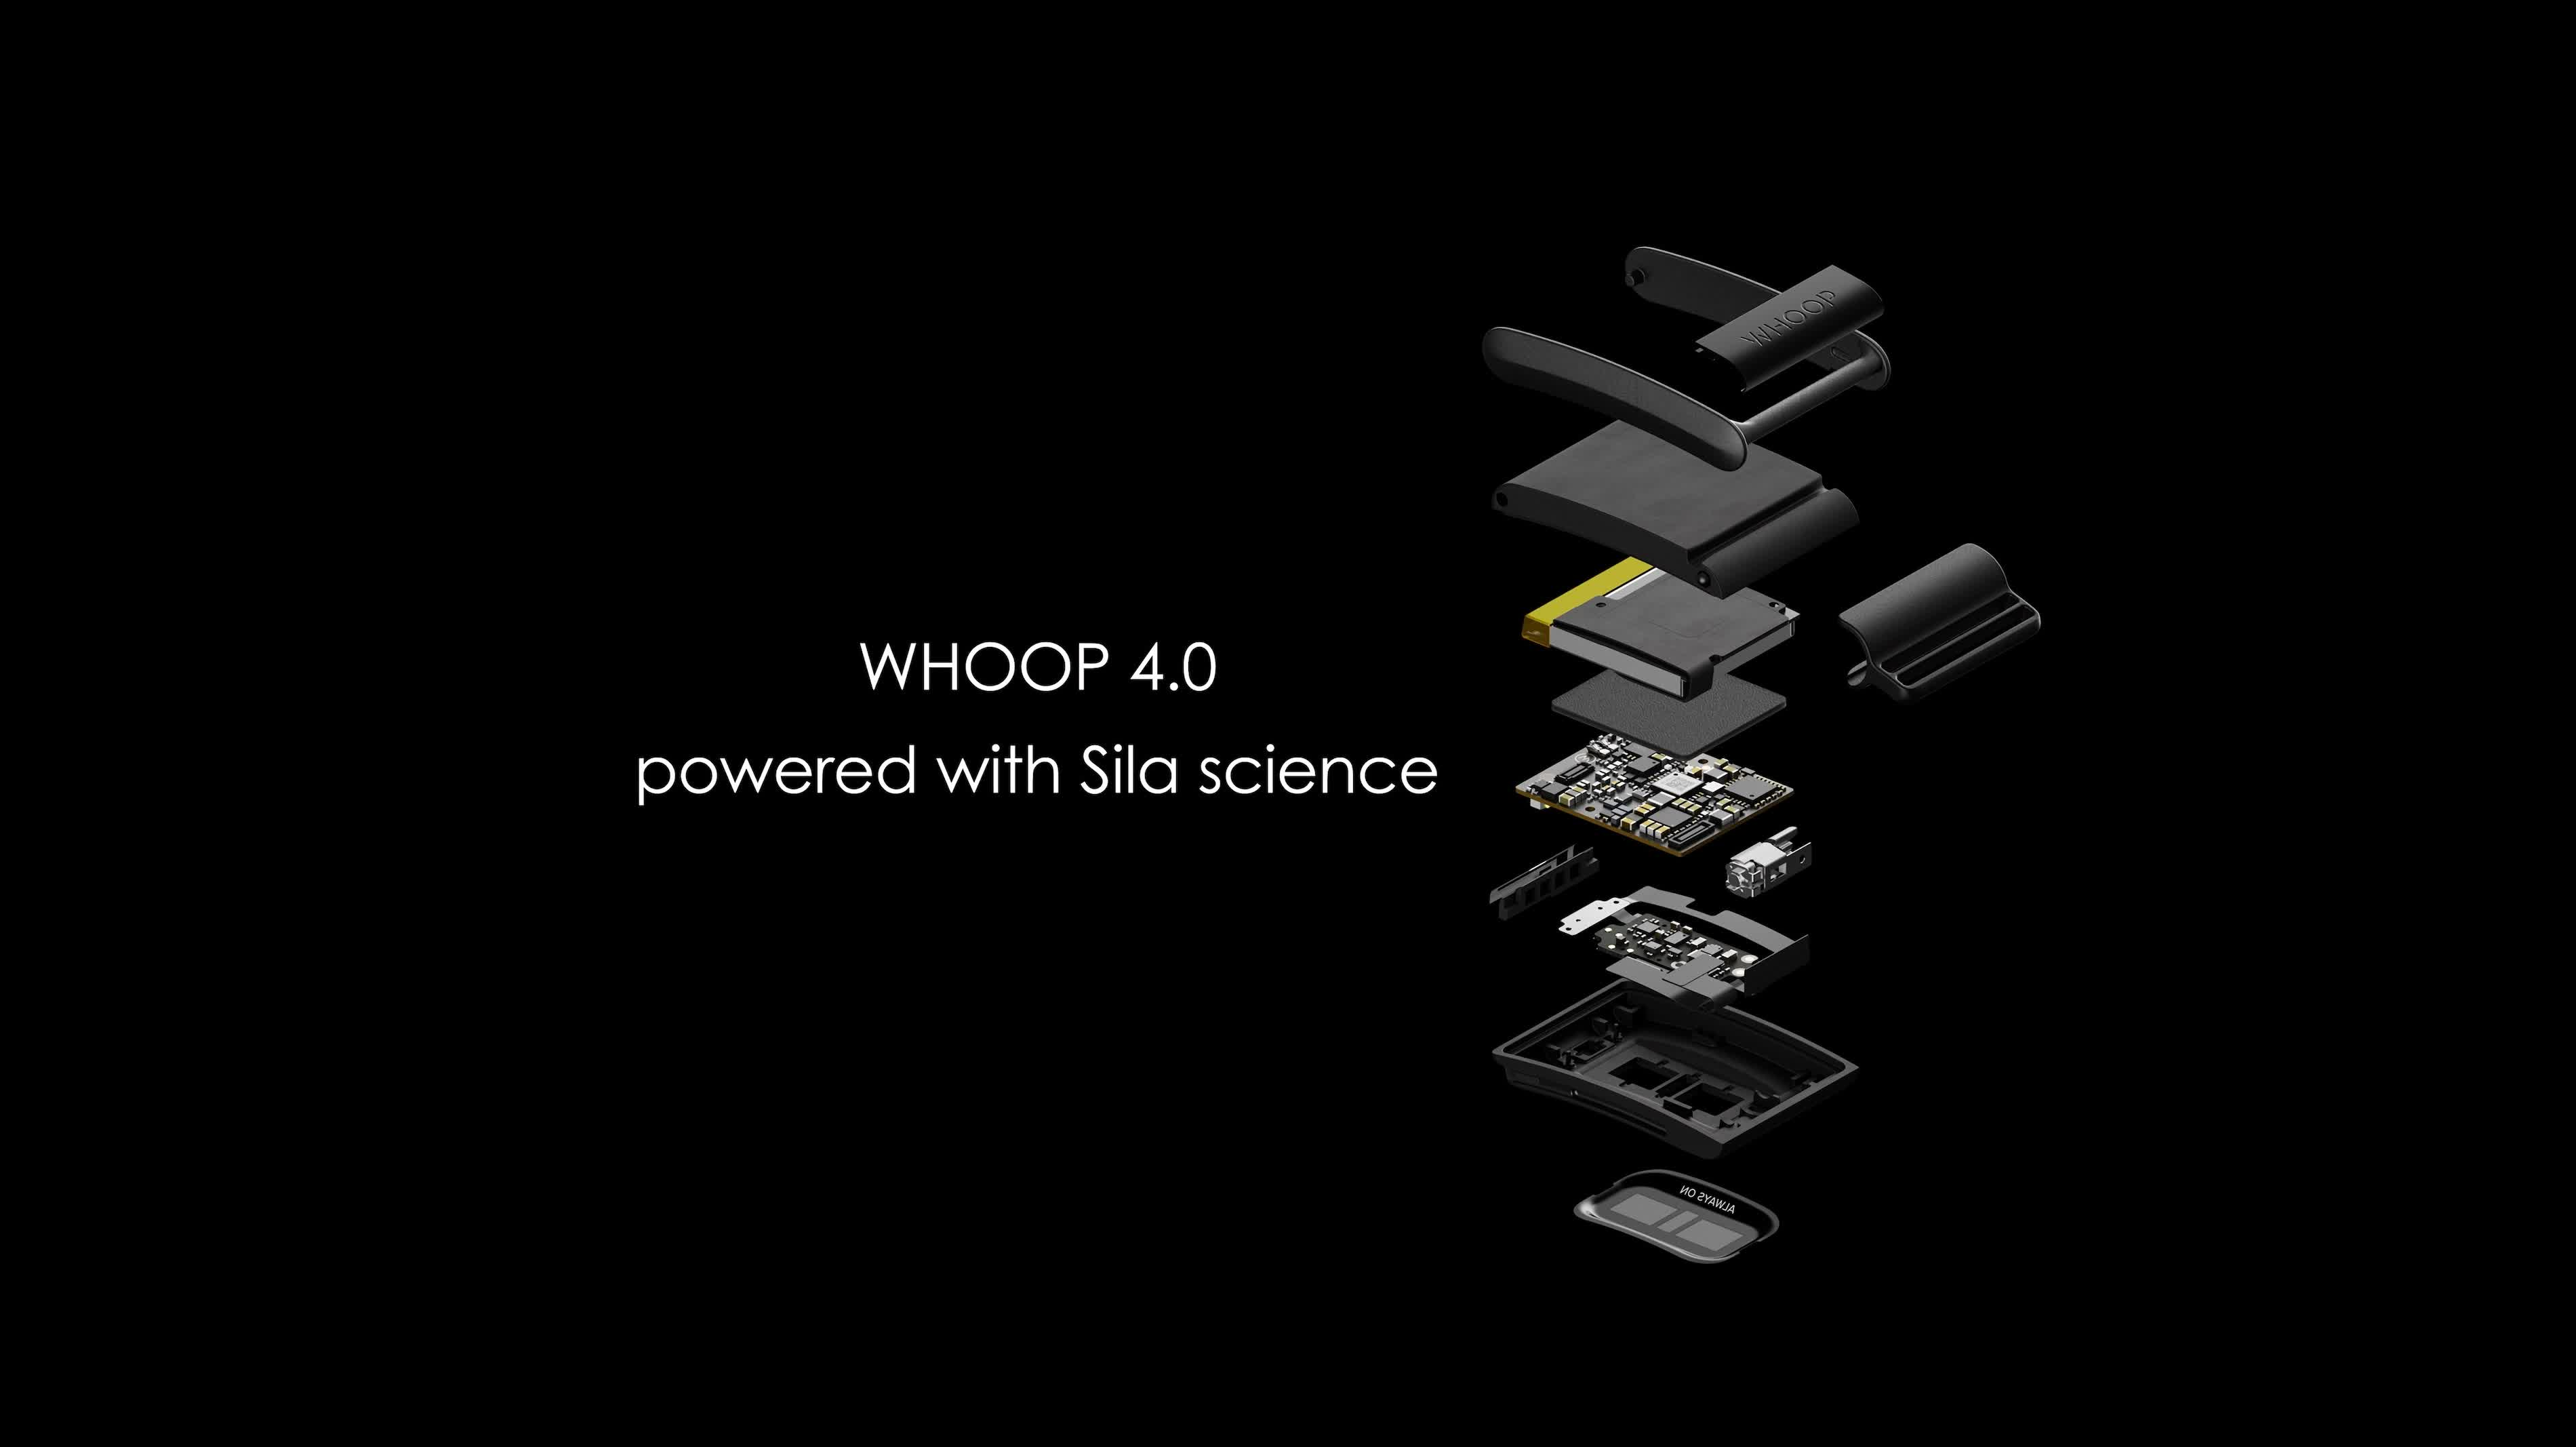 An important step to better lithium-ion batteries can be found in Whoop's latest wearable